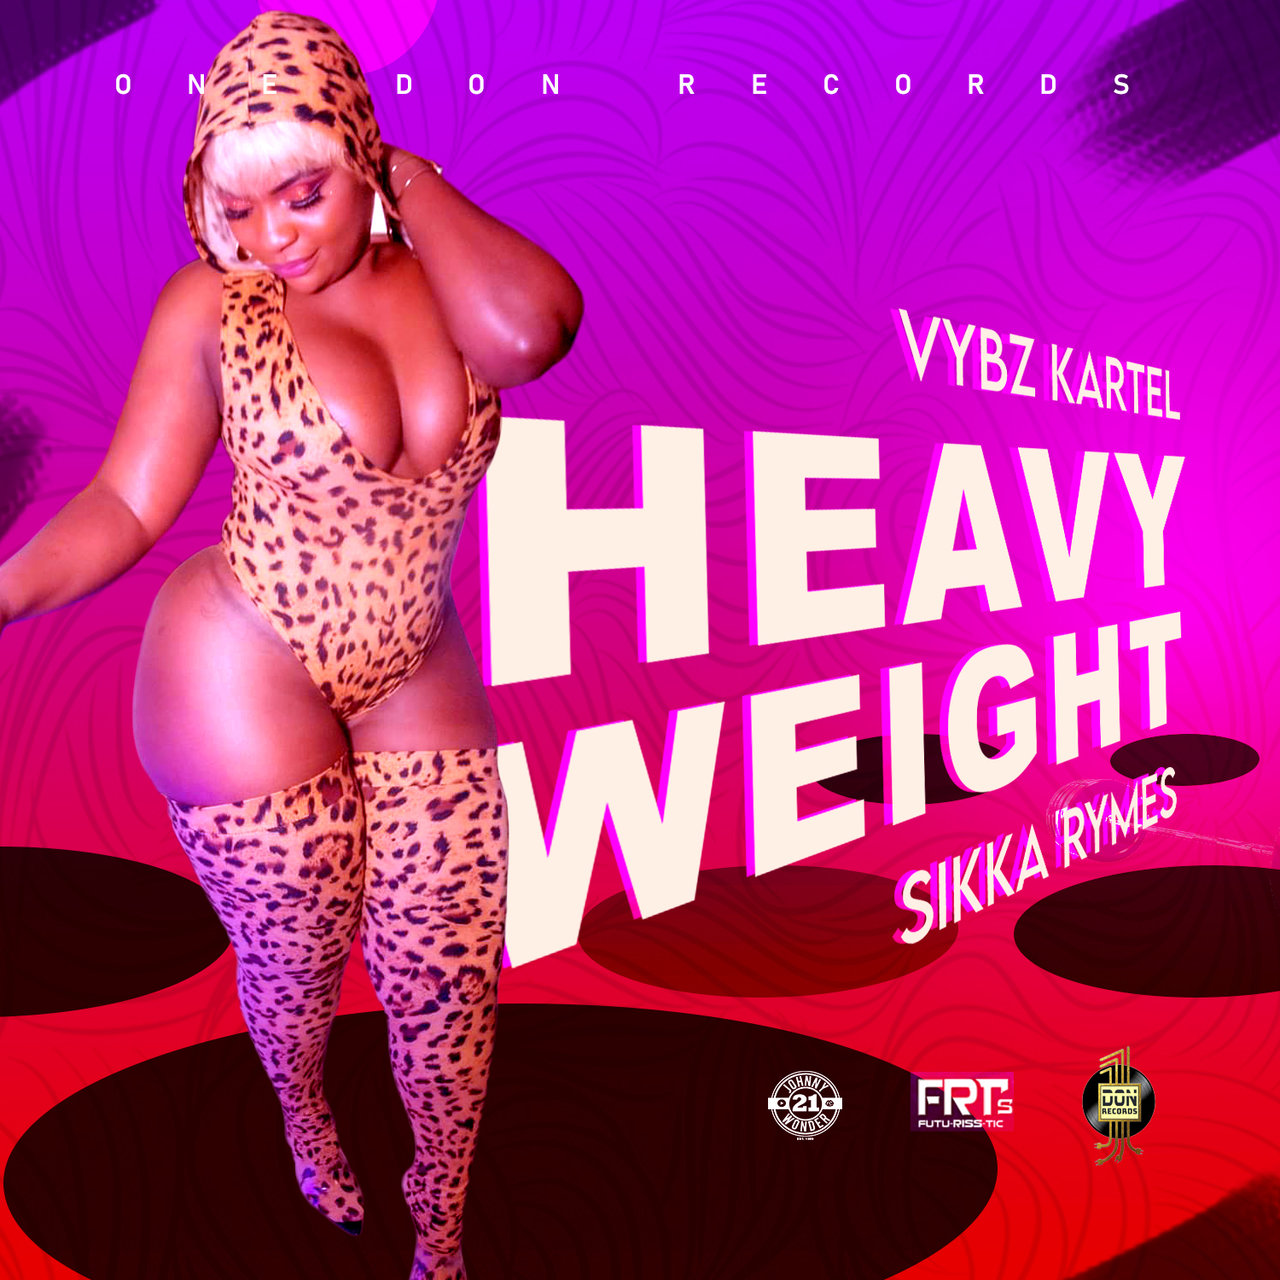 Vybz Kartel - Heavy Weight (ft. Sikka Rymes) (Cover)